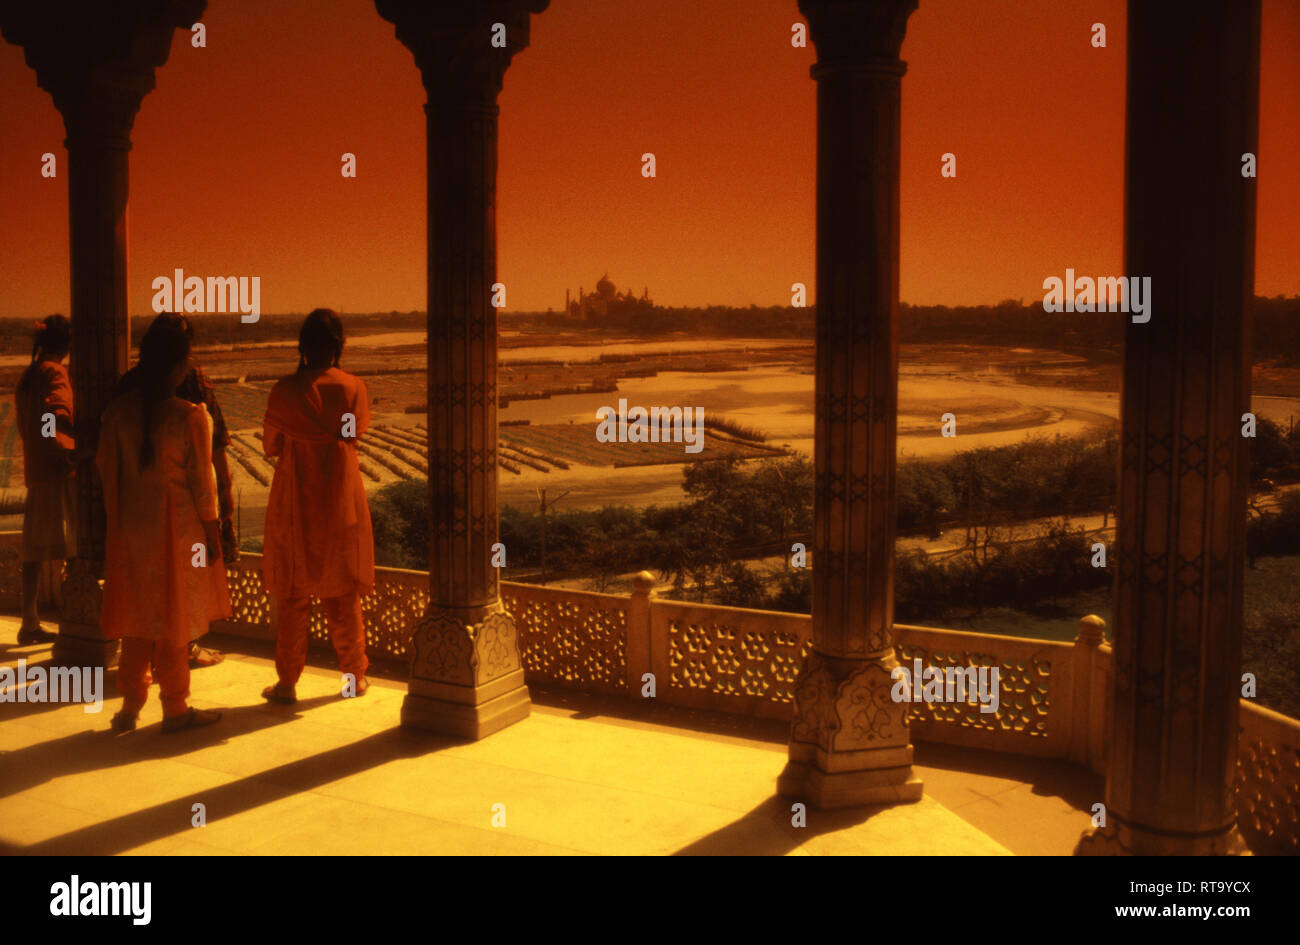 Indian tourists looking across Yamuna, Jumna, Jamuna, River, from Aurangzeb's apartment, prison at Taj Mahal from Red Fort Agra India - Stock Image